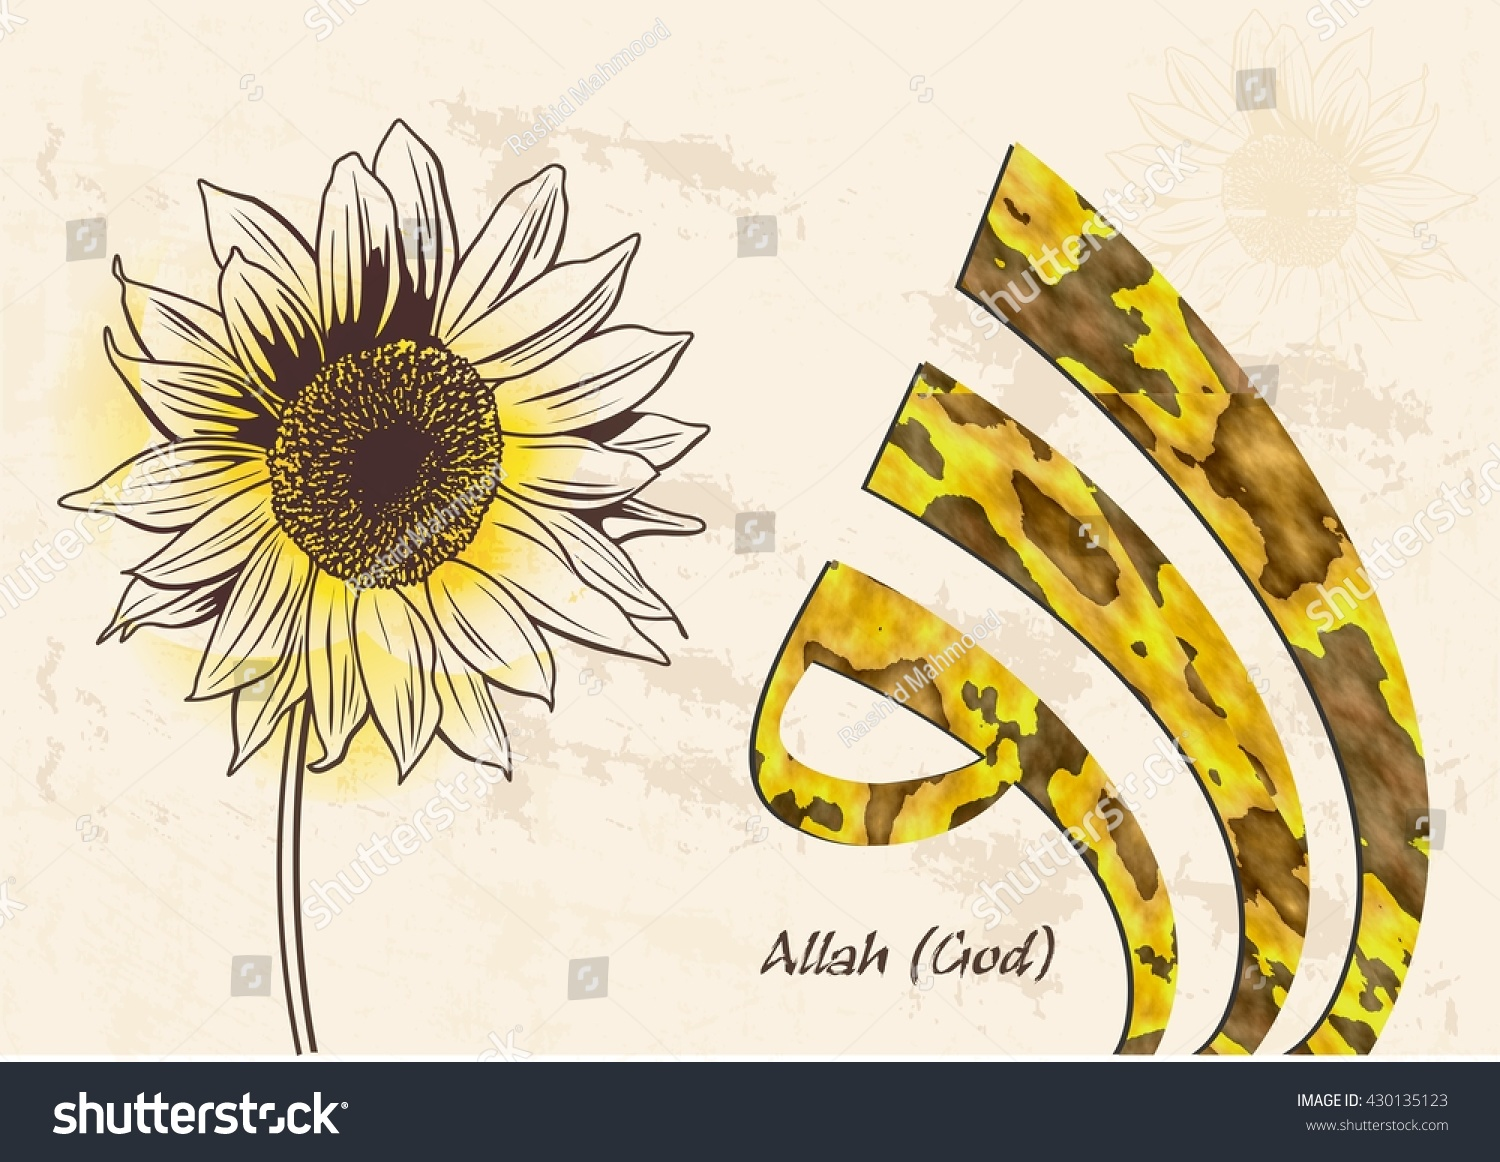 Royalty Free Stock Illustration Of Allah Written Arabic Calligraphy